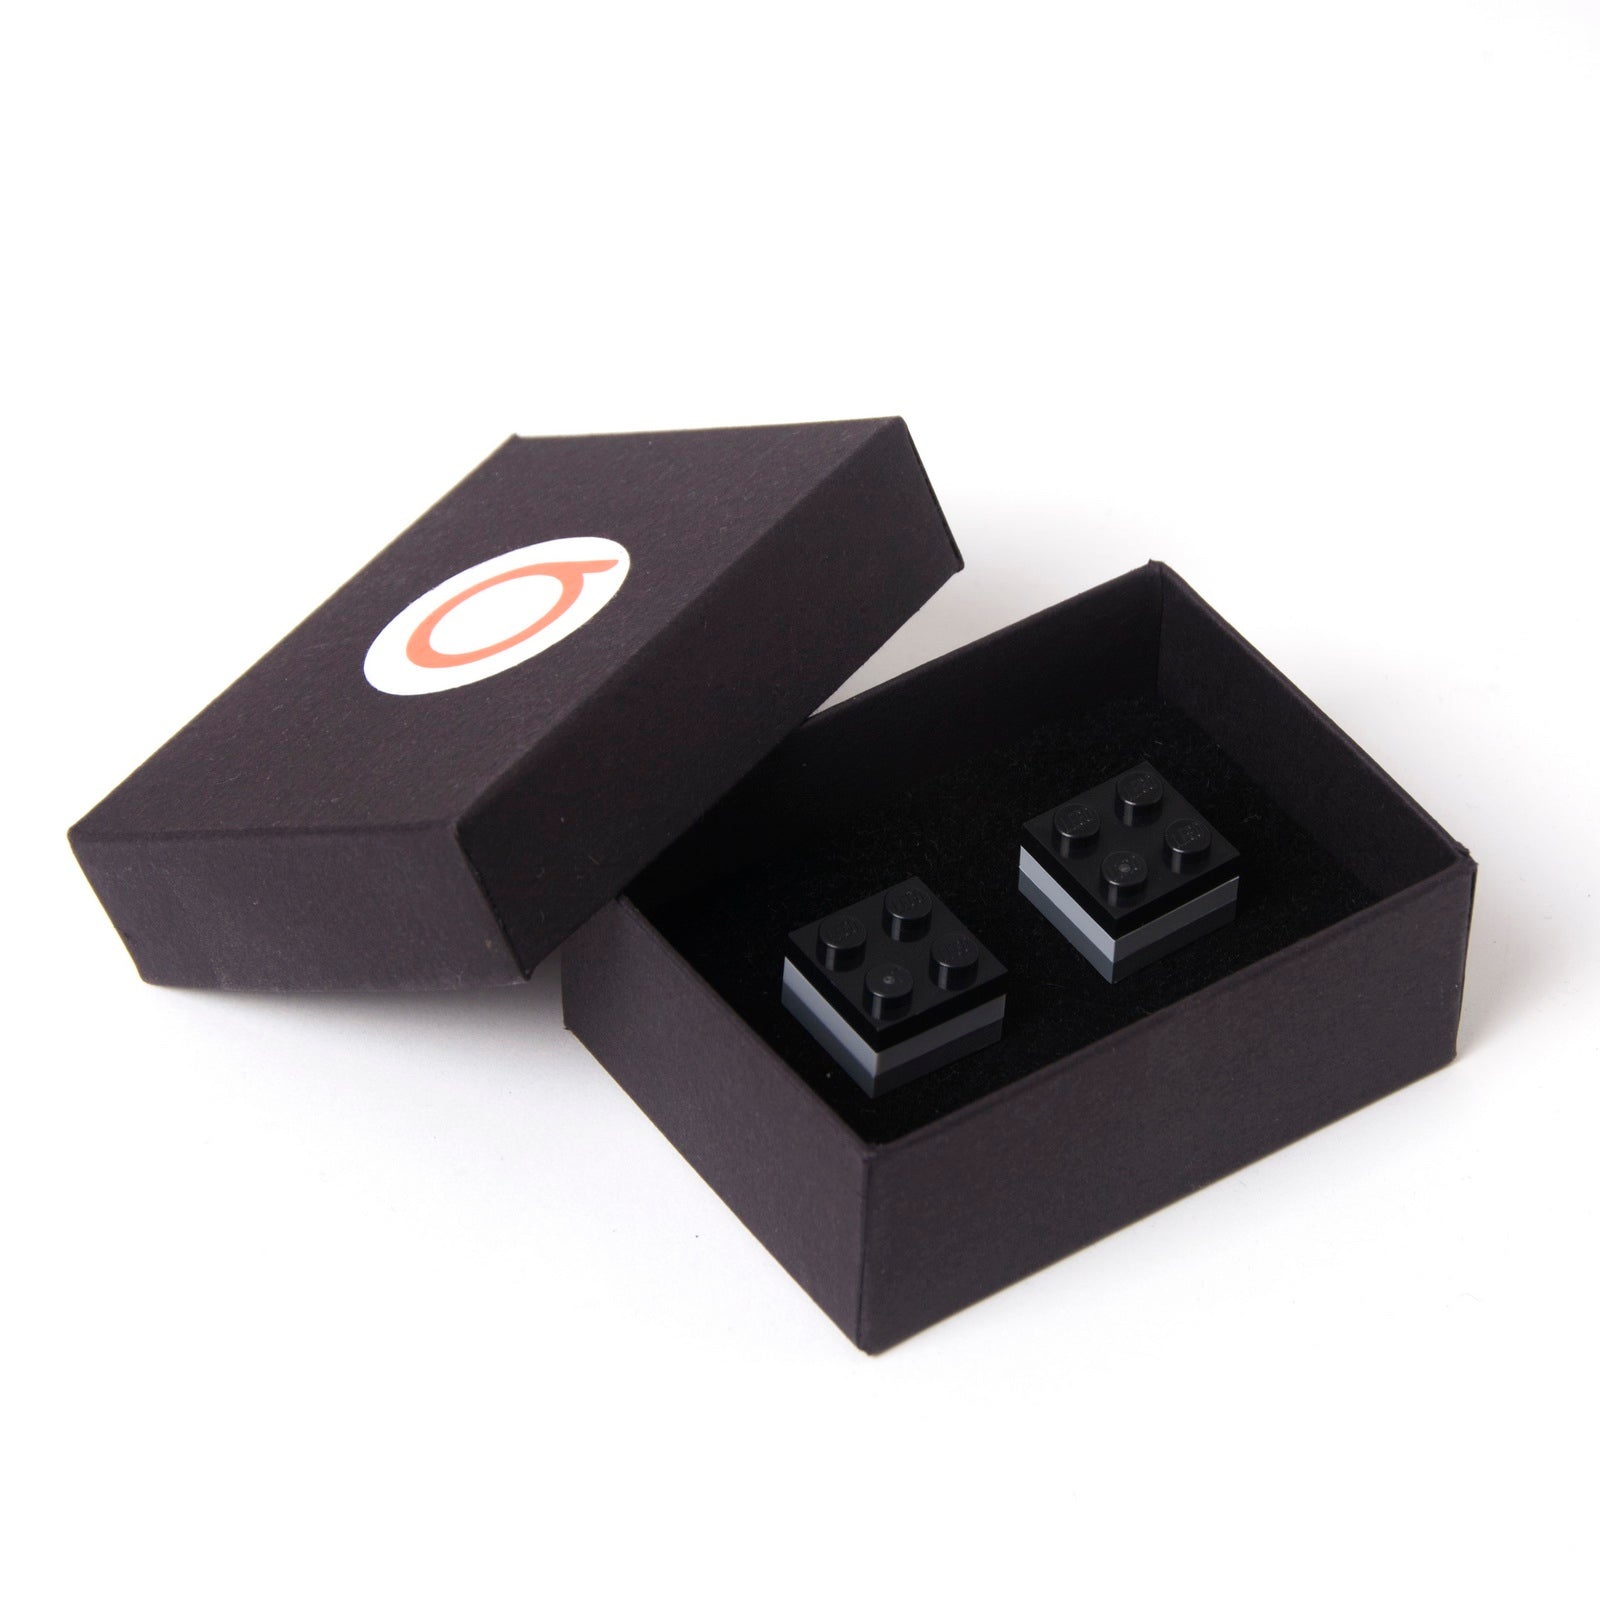 LIVERPOOL tricolor cufflinks